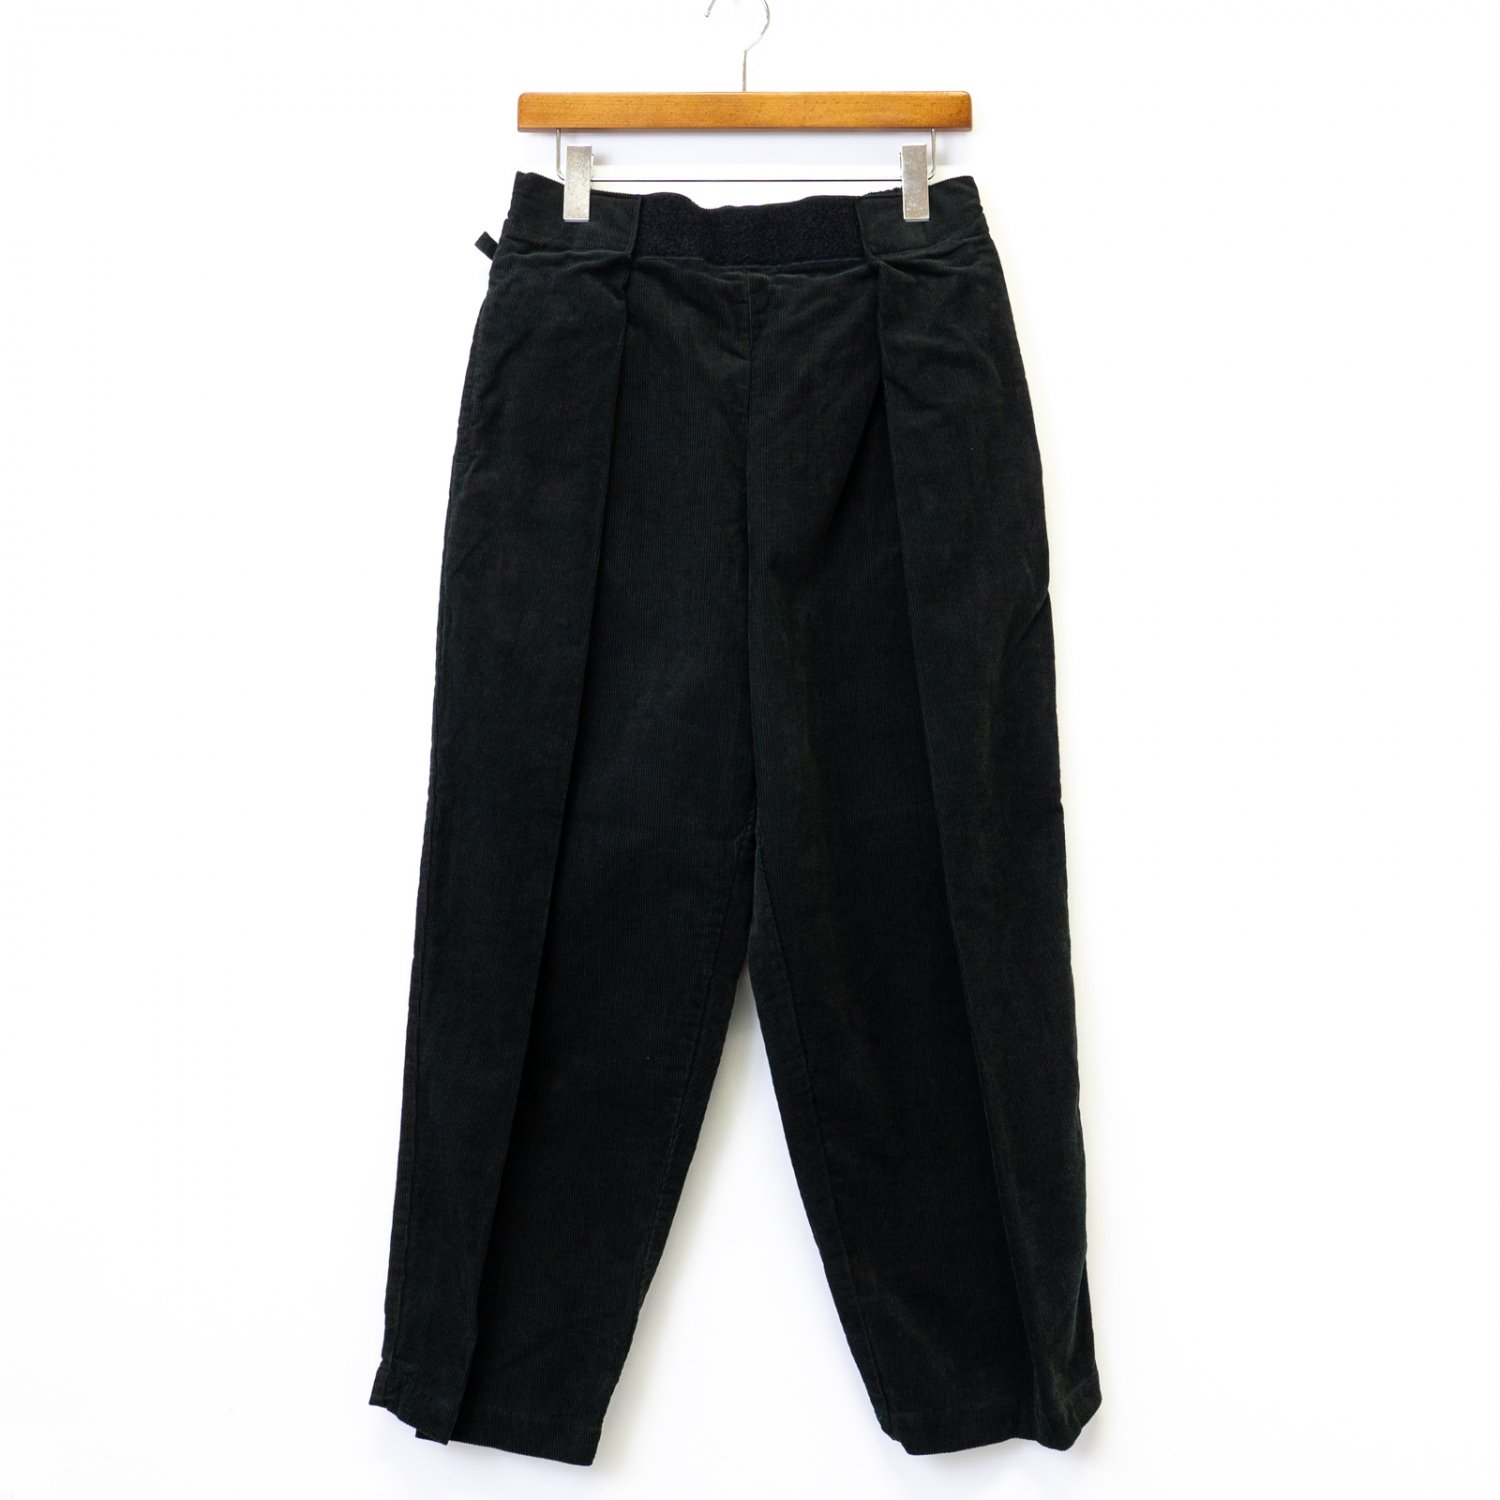 RELAXFIT * NORTH PADRE ISLAND CORDUROY * Black